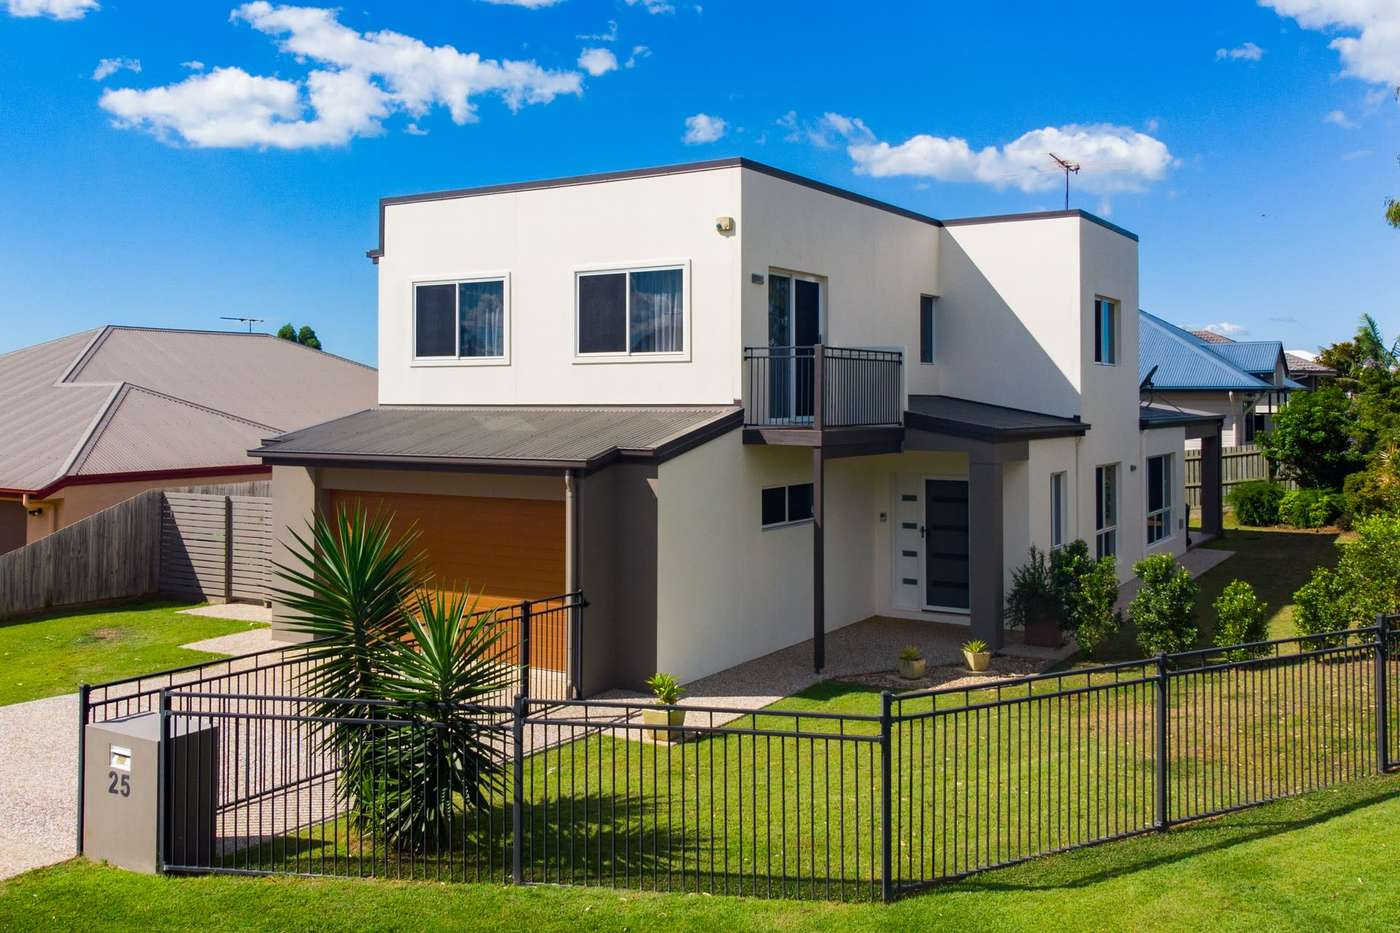 Main view of Homely house listing, 25 Hoskins Drive, Wellington Point, QLD 4160